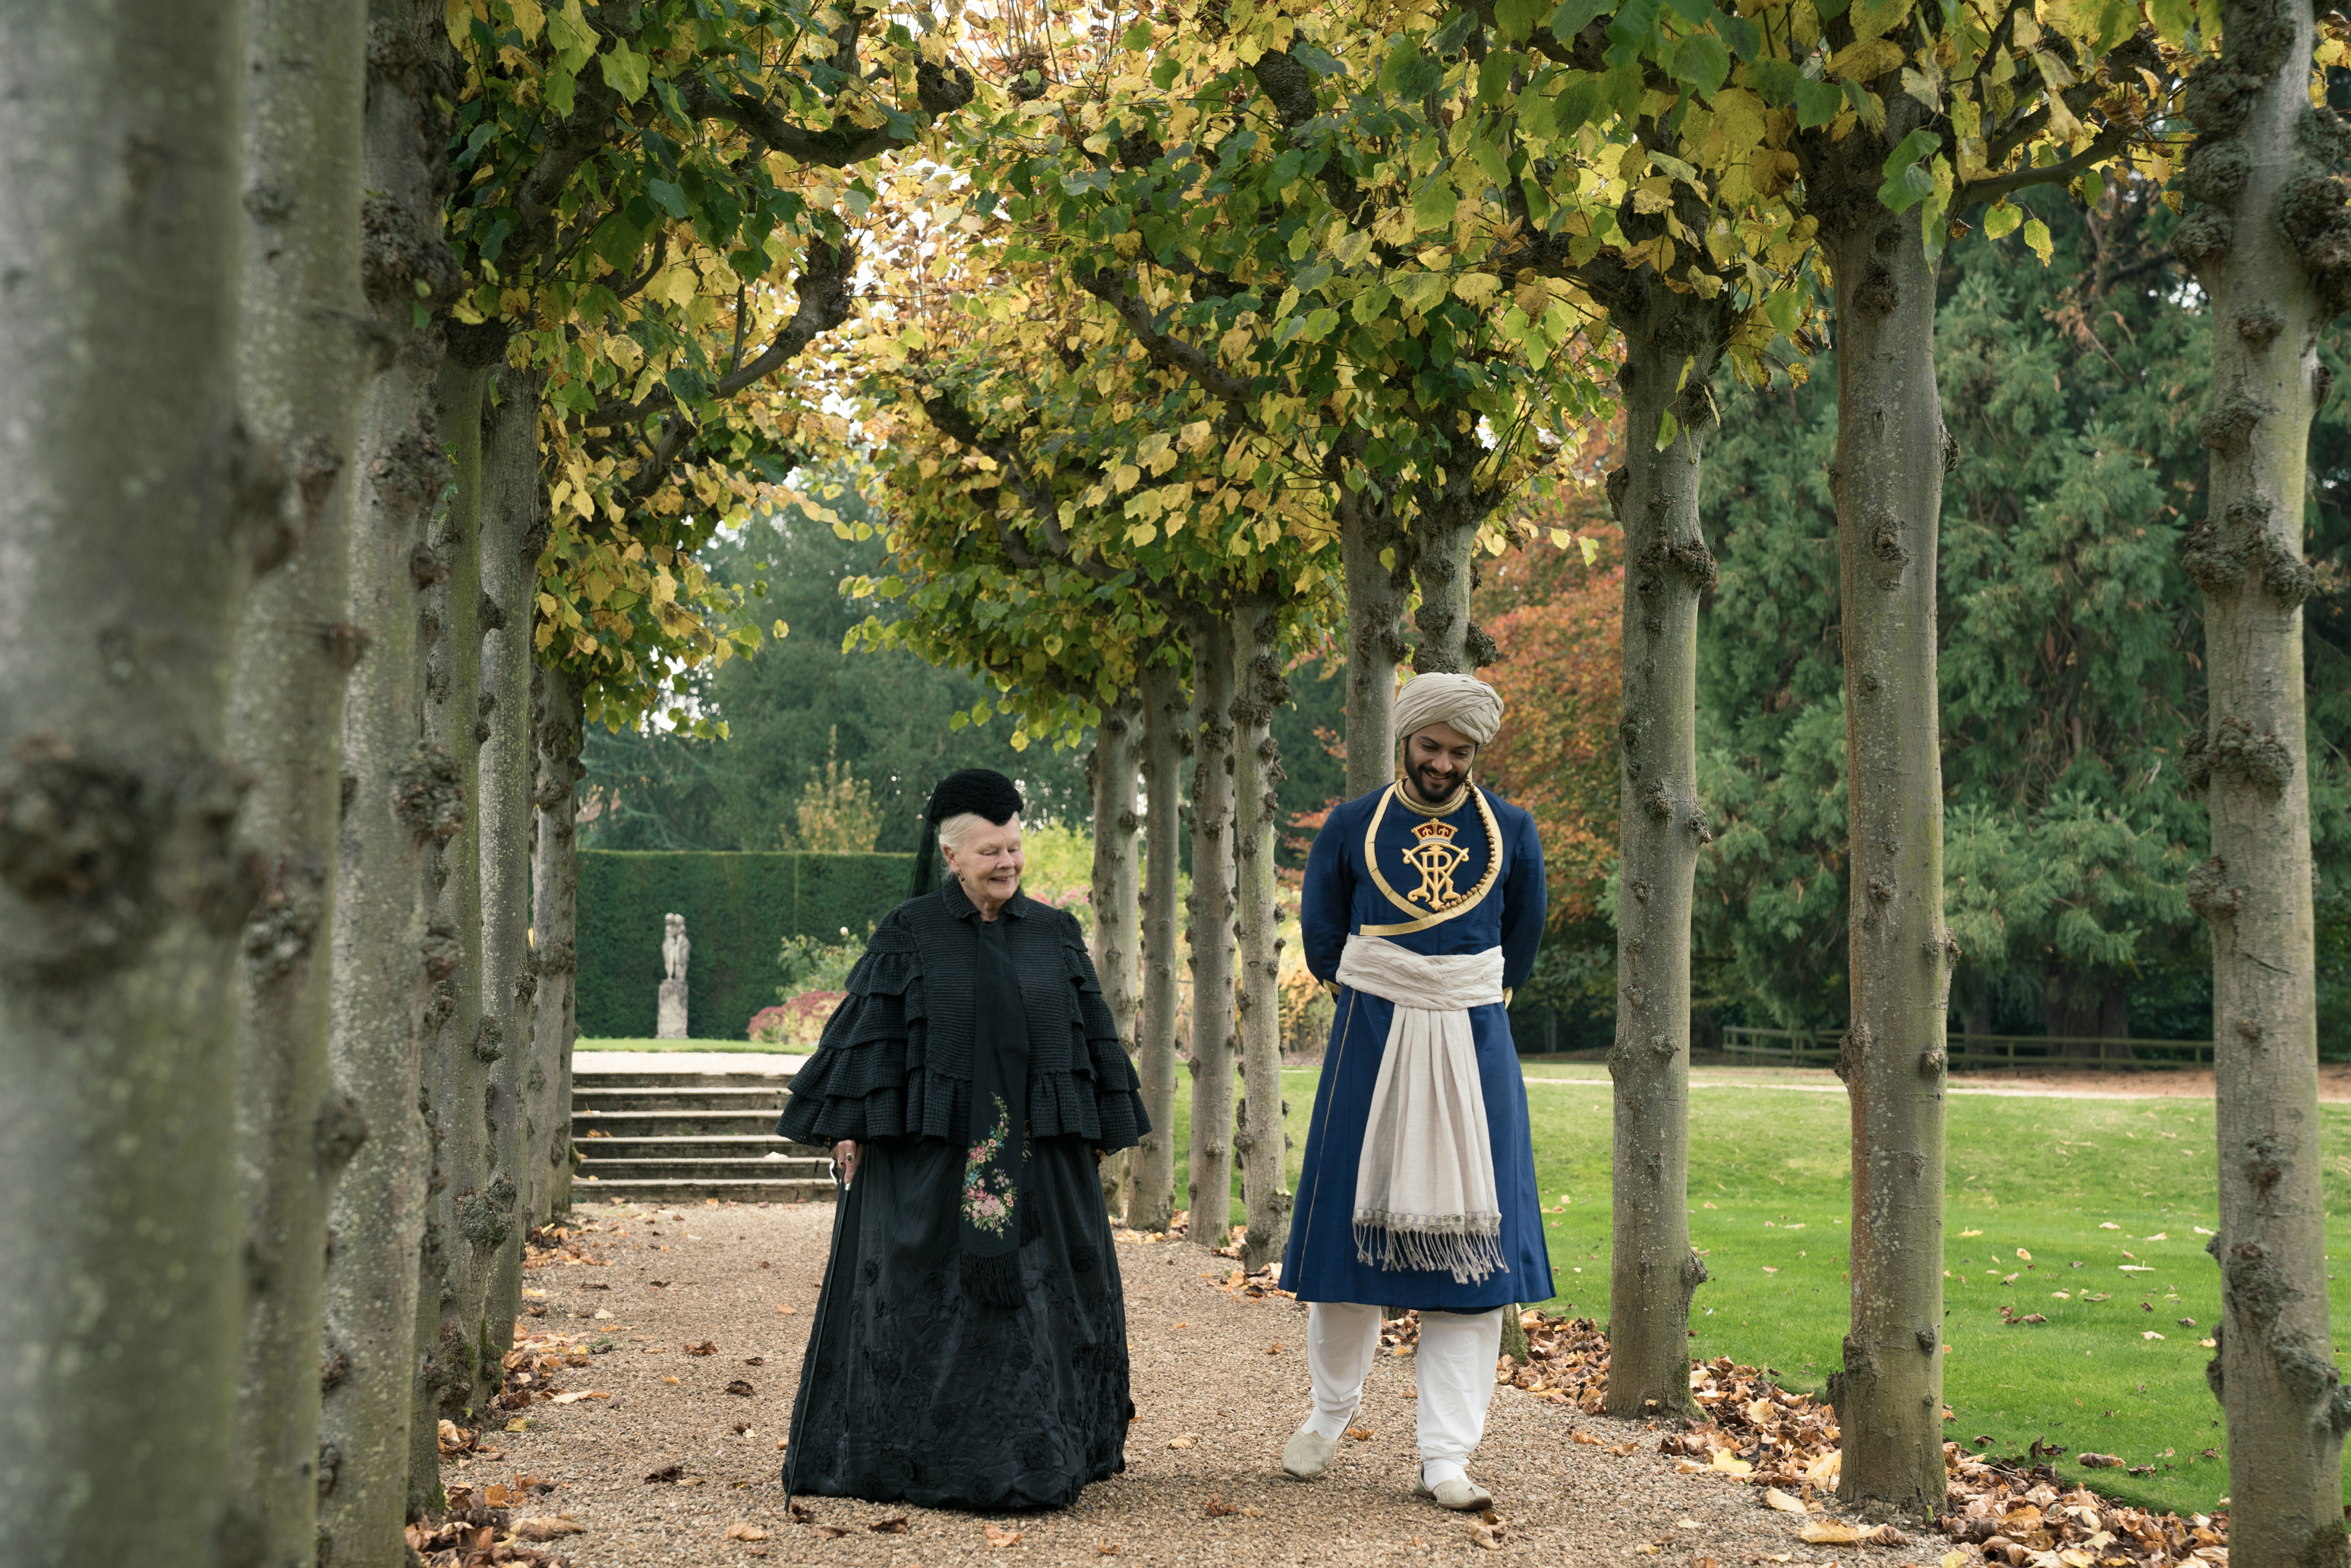 Judi Dench and Ali Fazal star in VICTORIA & ABDUL